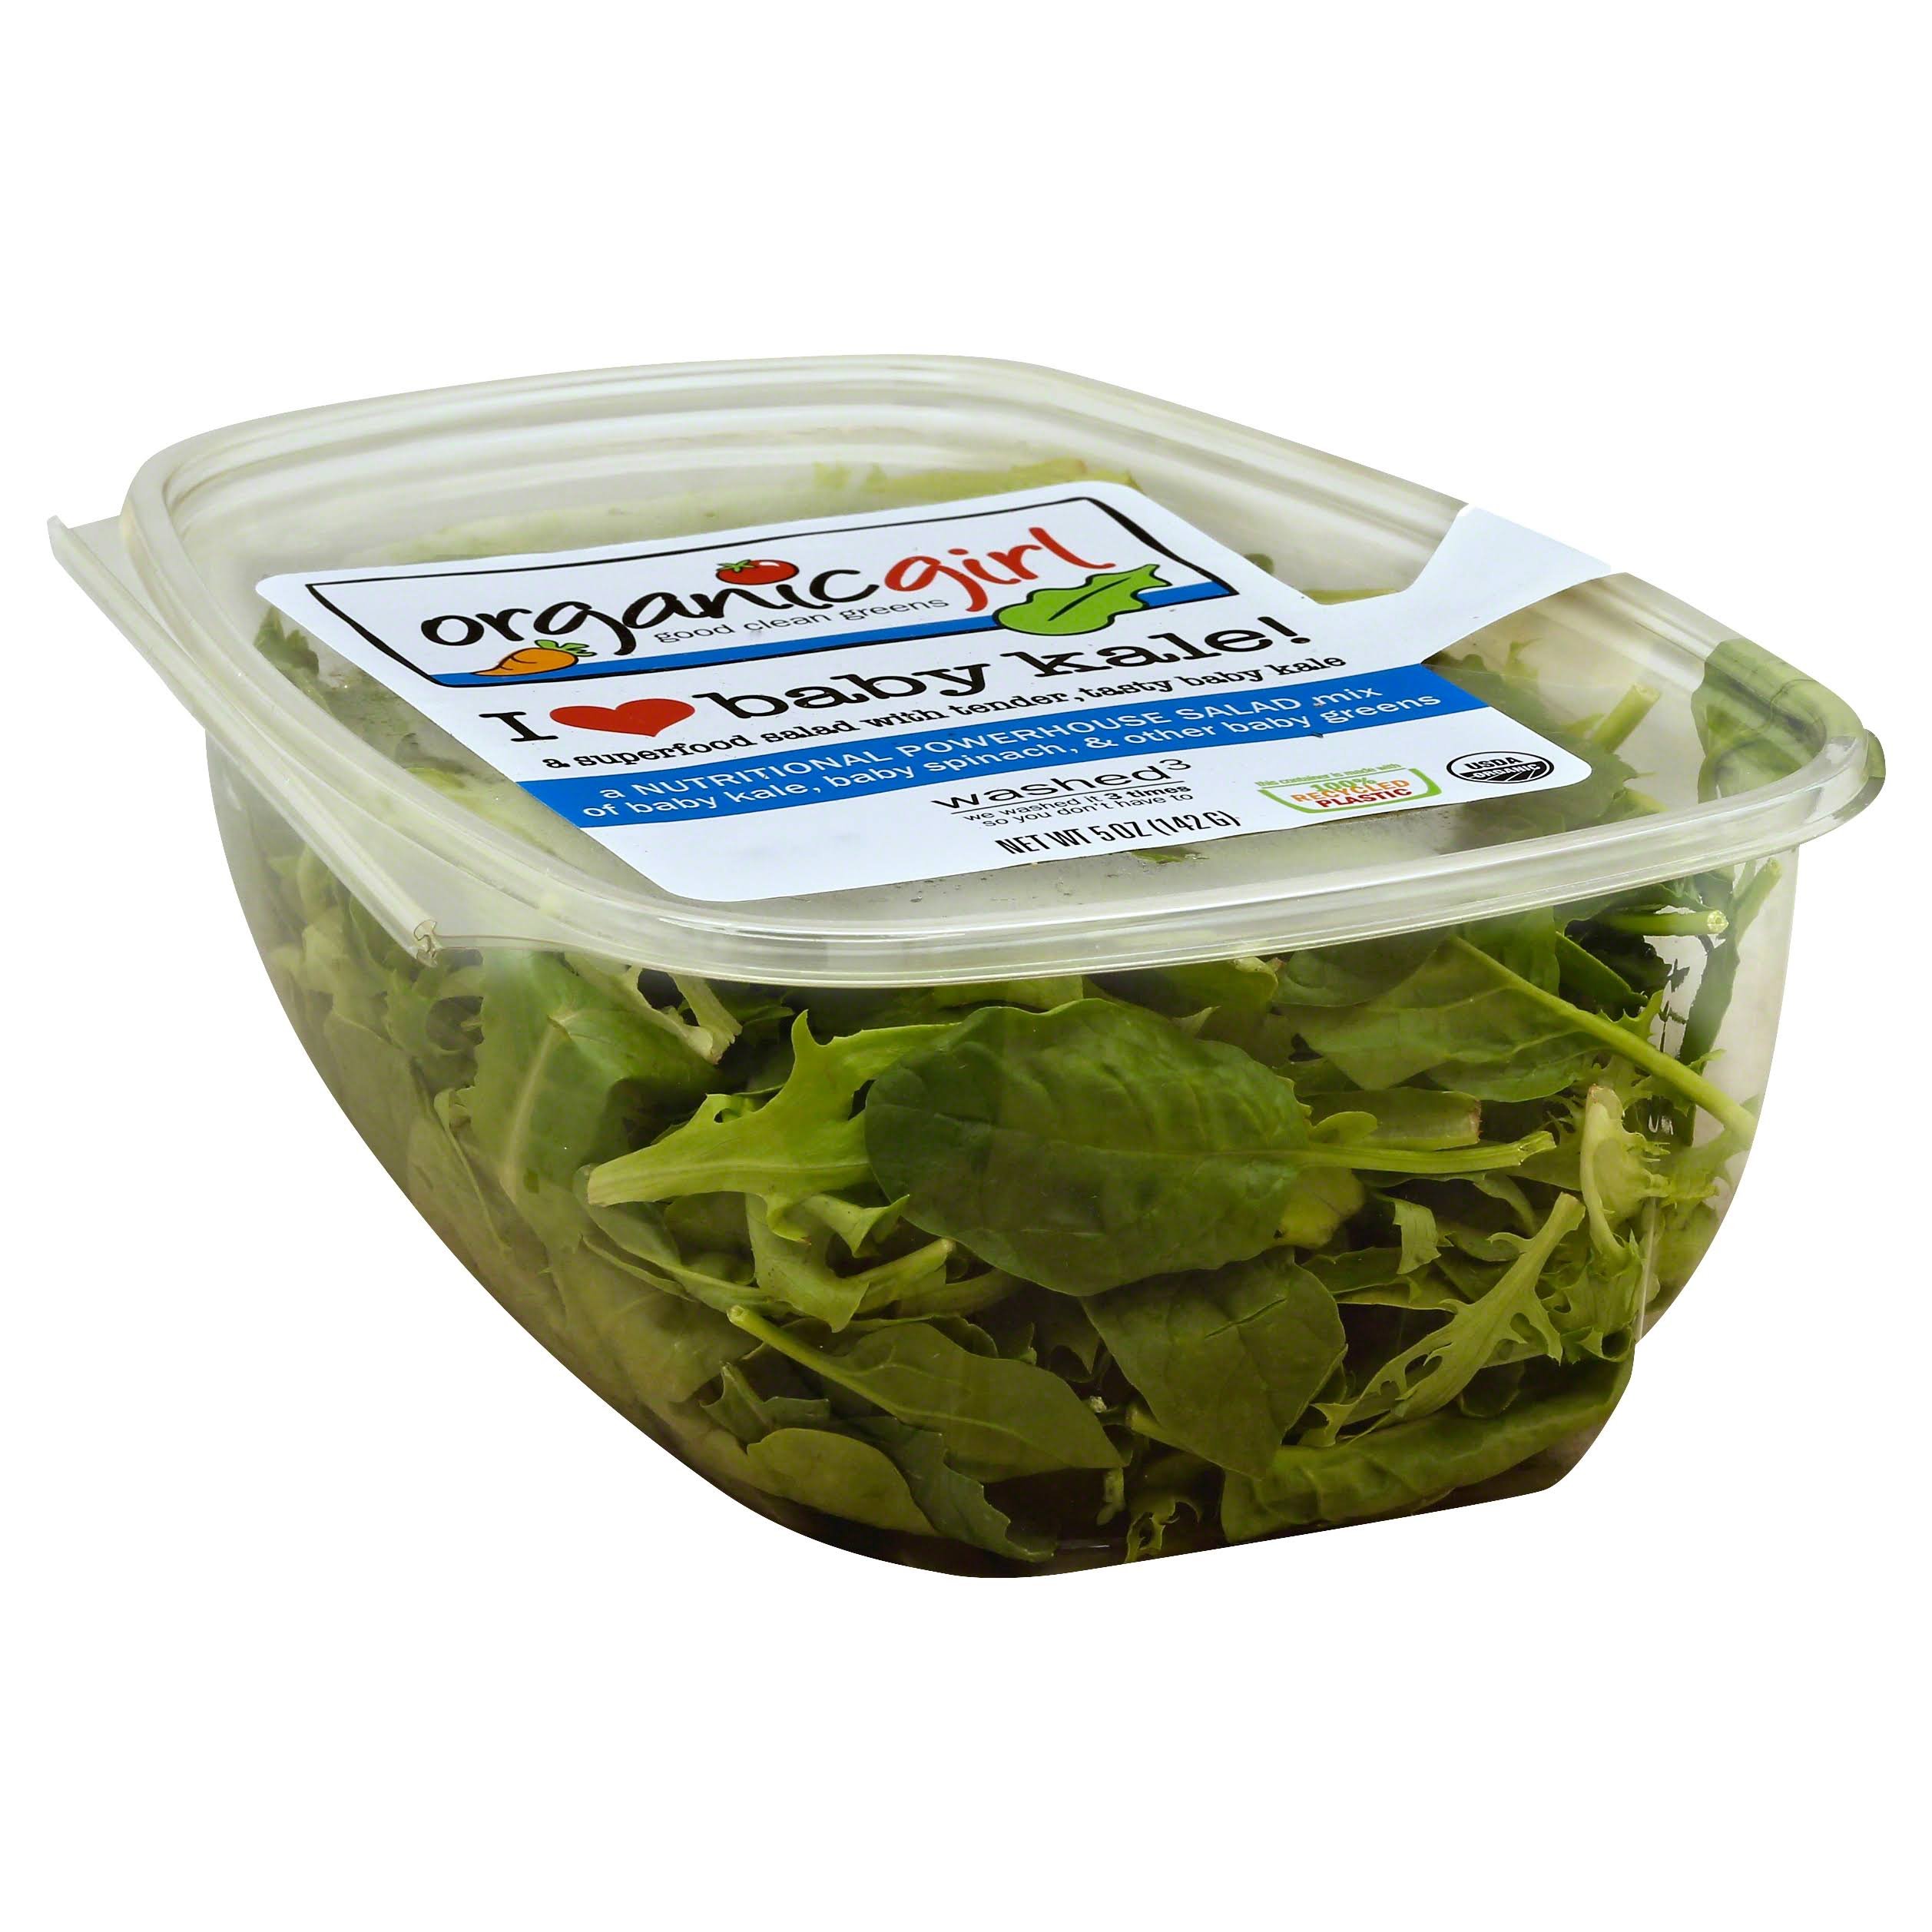 OrganicGirl Salad Mix - 5 oz